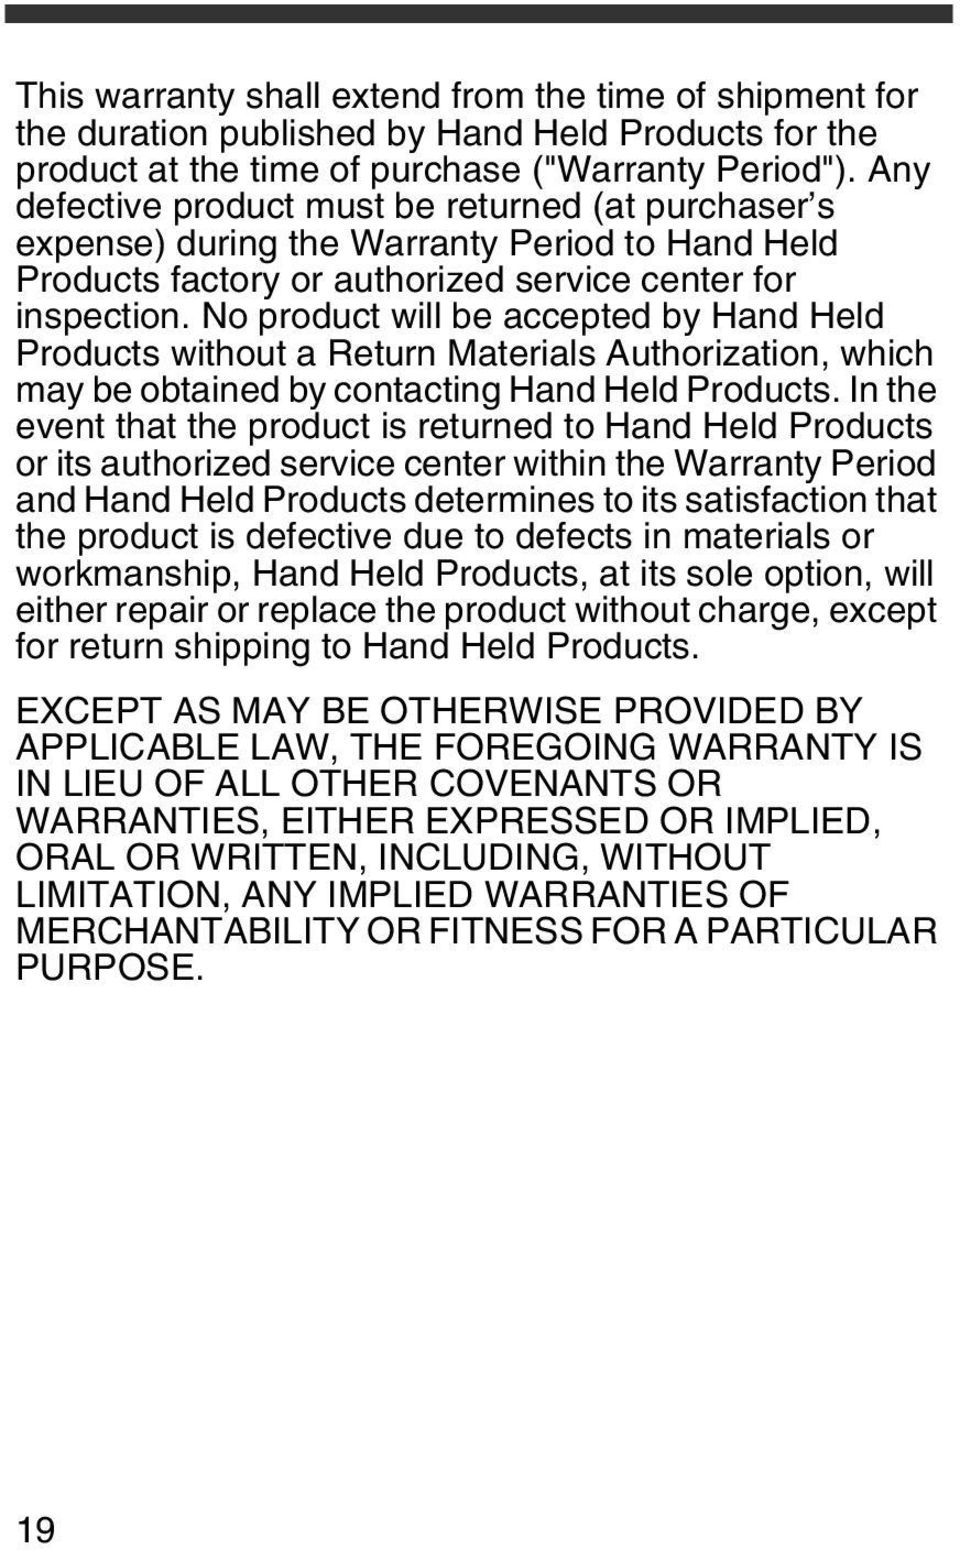 No product will be accepted by Hand Held Products without a Return Materials Authorization, which may be obtained by contacting Hand Held Products.